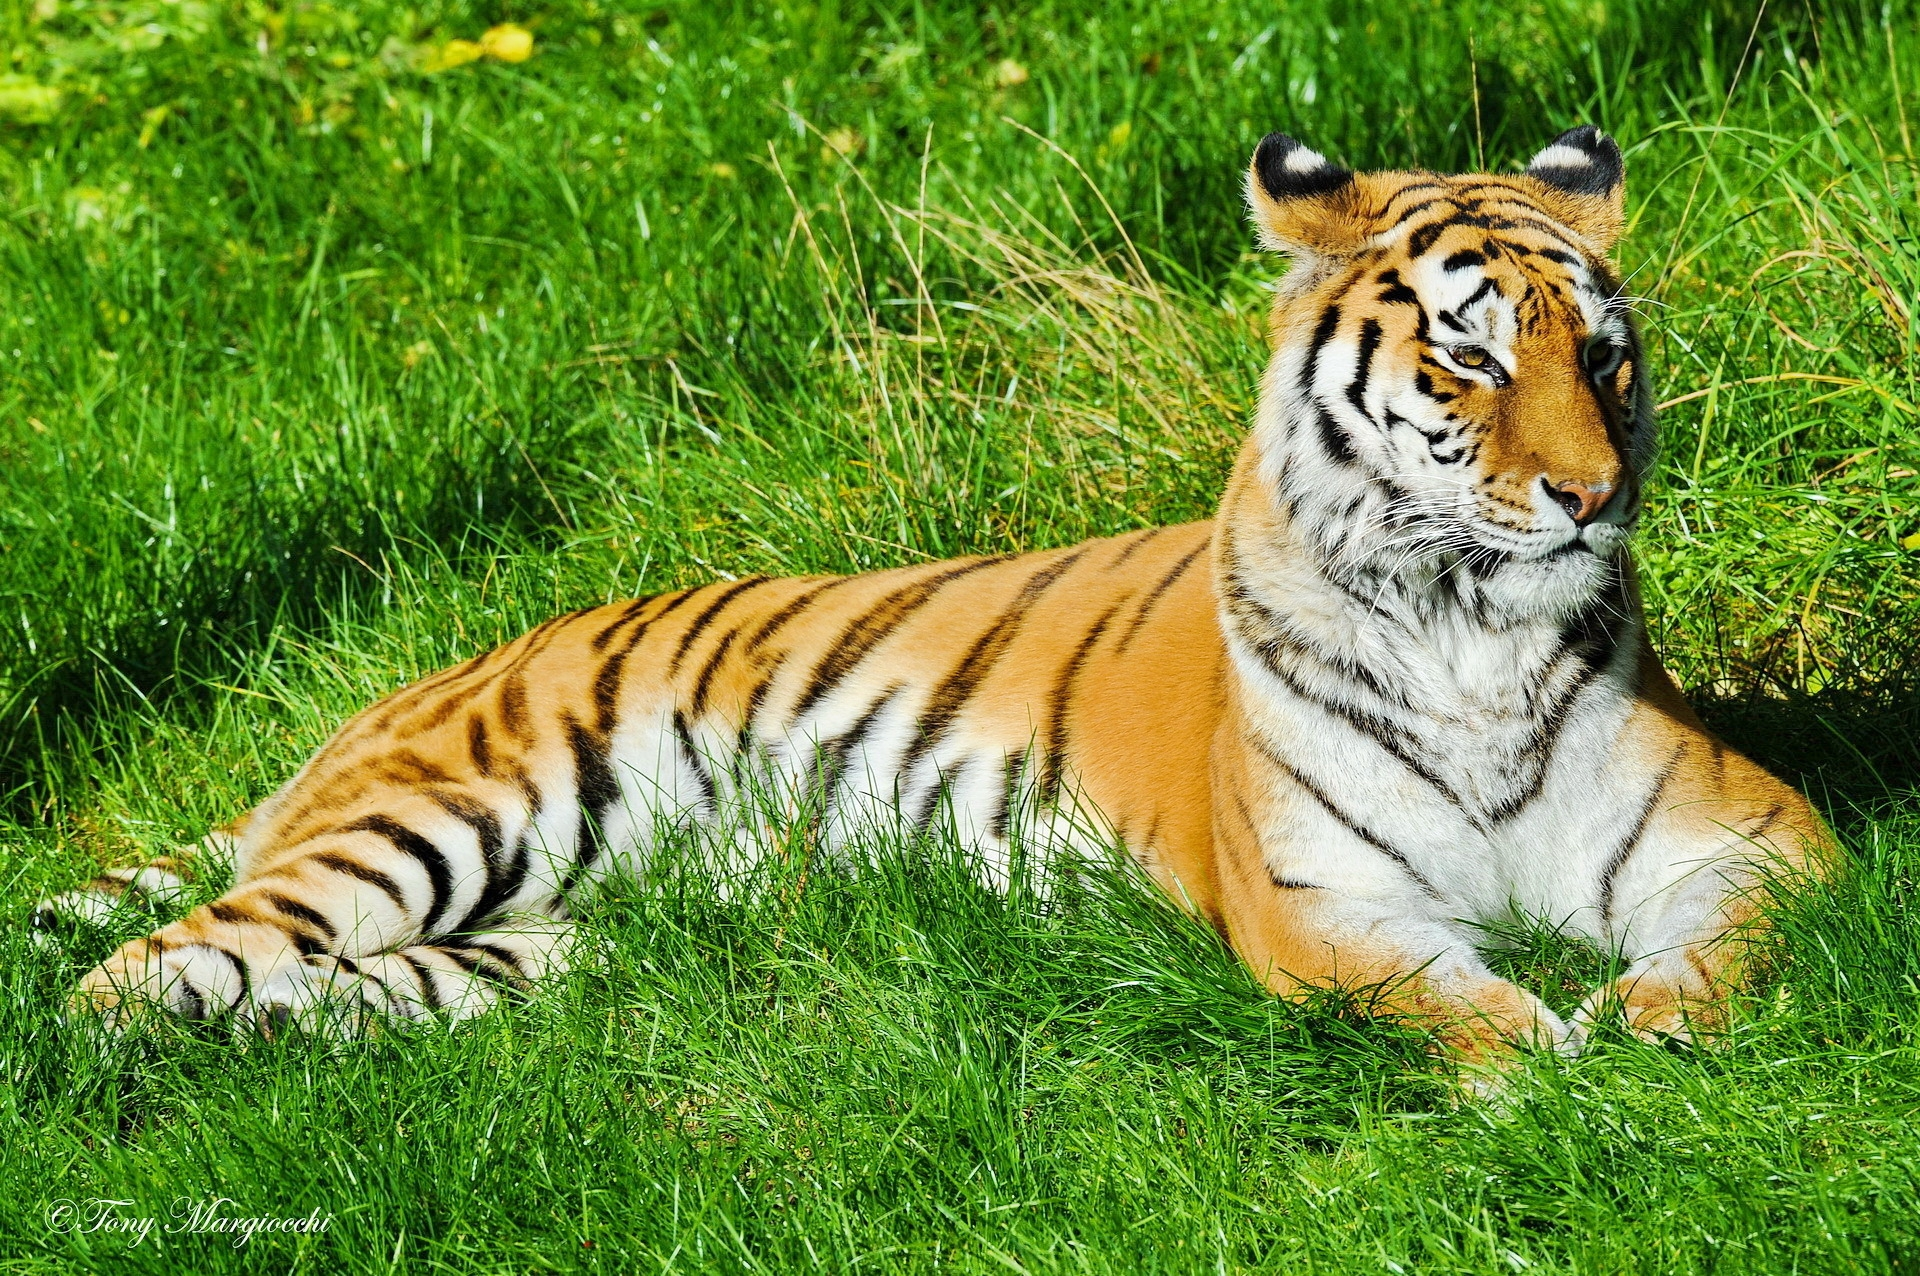 52929 download wallpaper Animals, Tiger, Grass, To Lie Down, Lie, Predator, Watch, To Watch screensavers and pictures for free